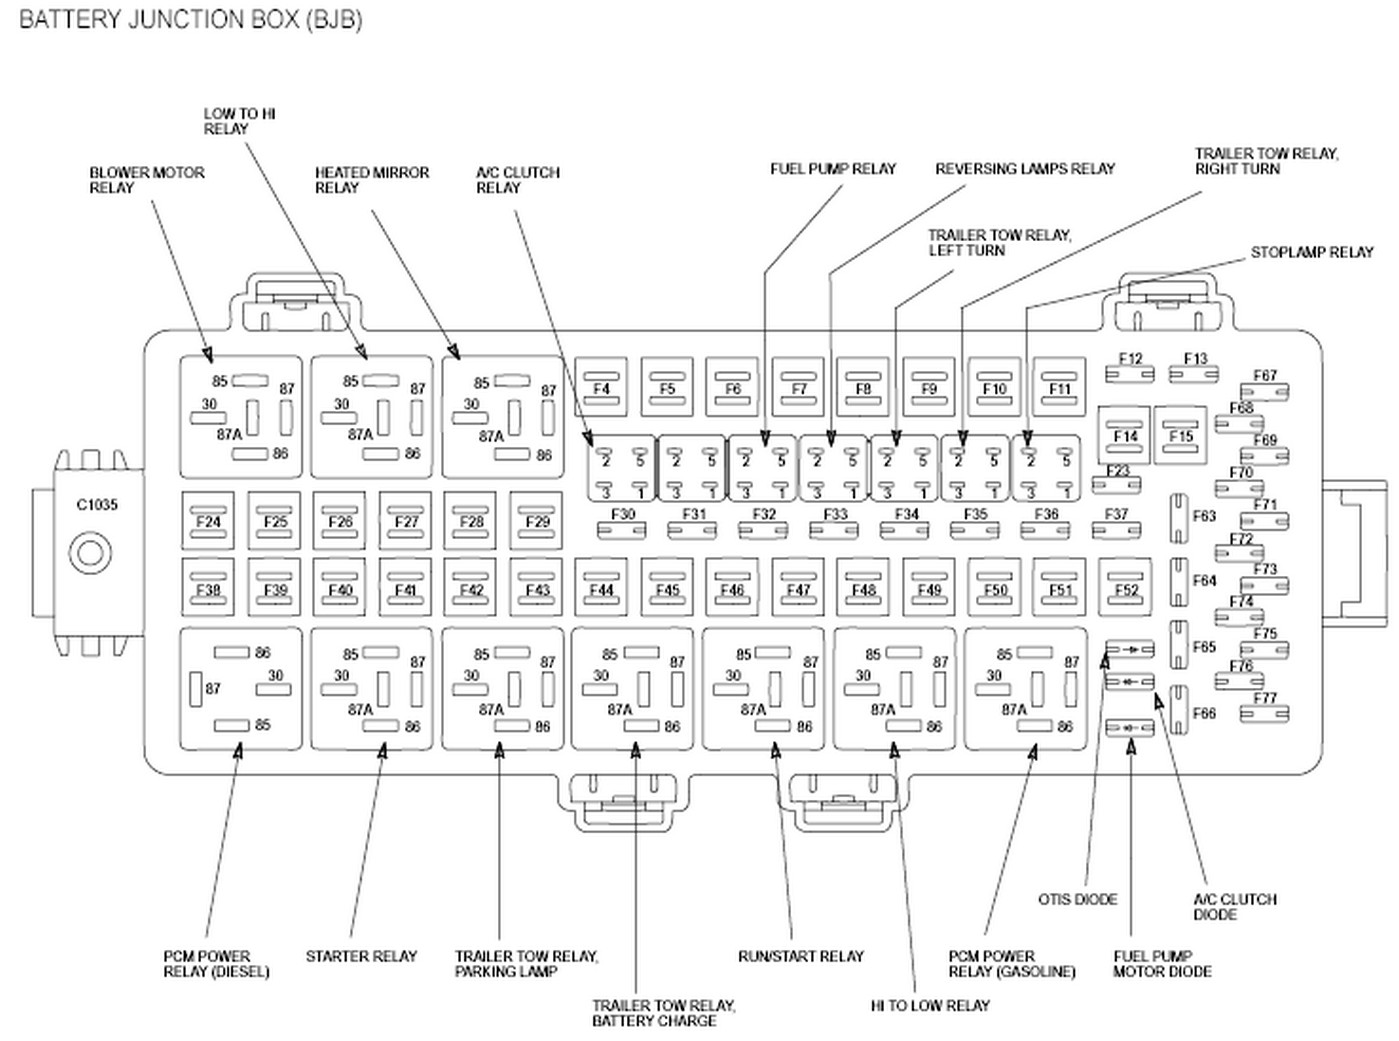 2011 ford f250 fuse box diagram Zoinyhu 2012 f250 fuse box location 2009 ford fusion fuse box diagram 2012 ford edge fuse box diagram at pacquiaovsvargaslive.co